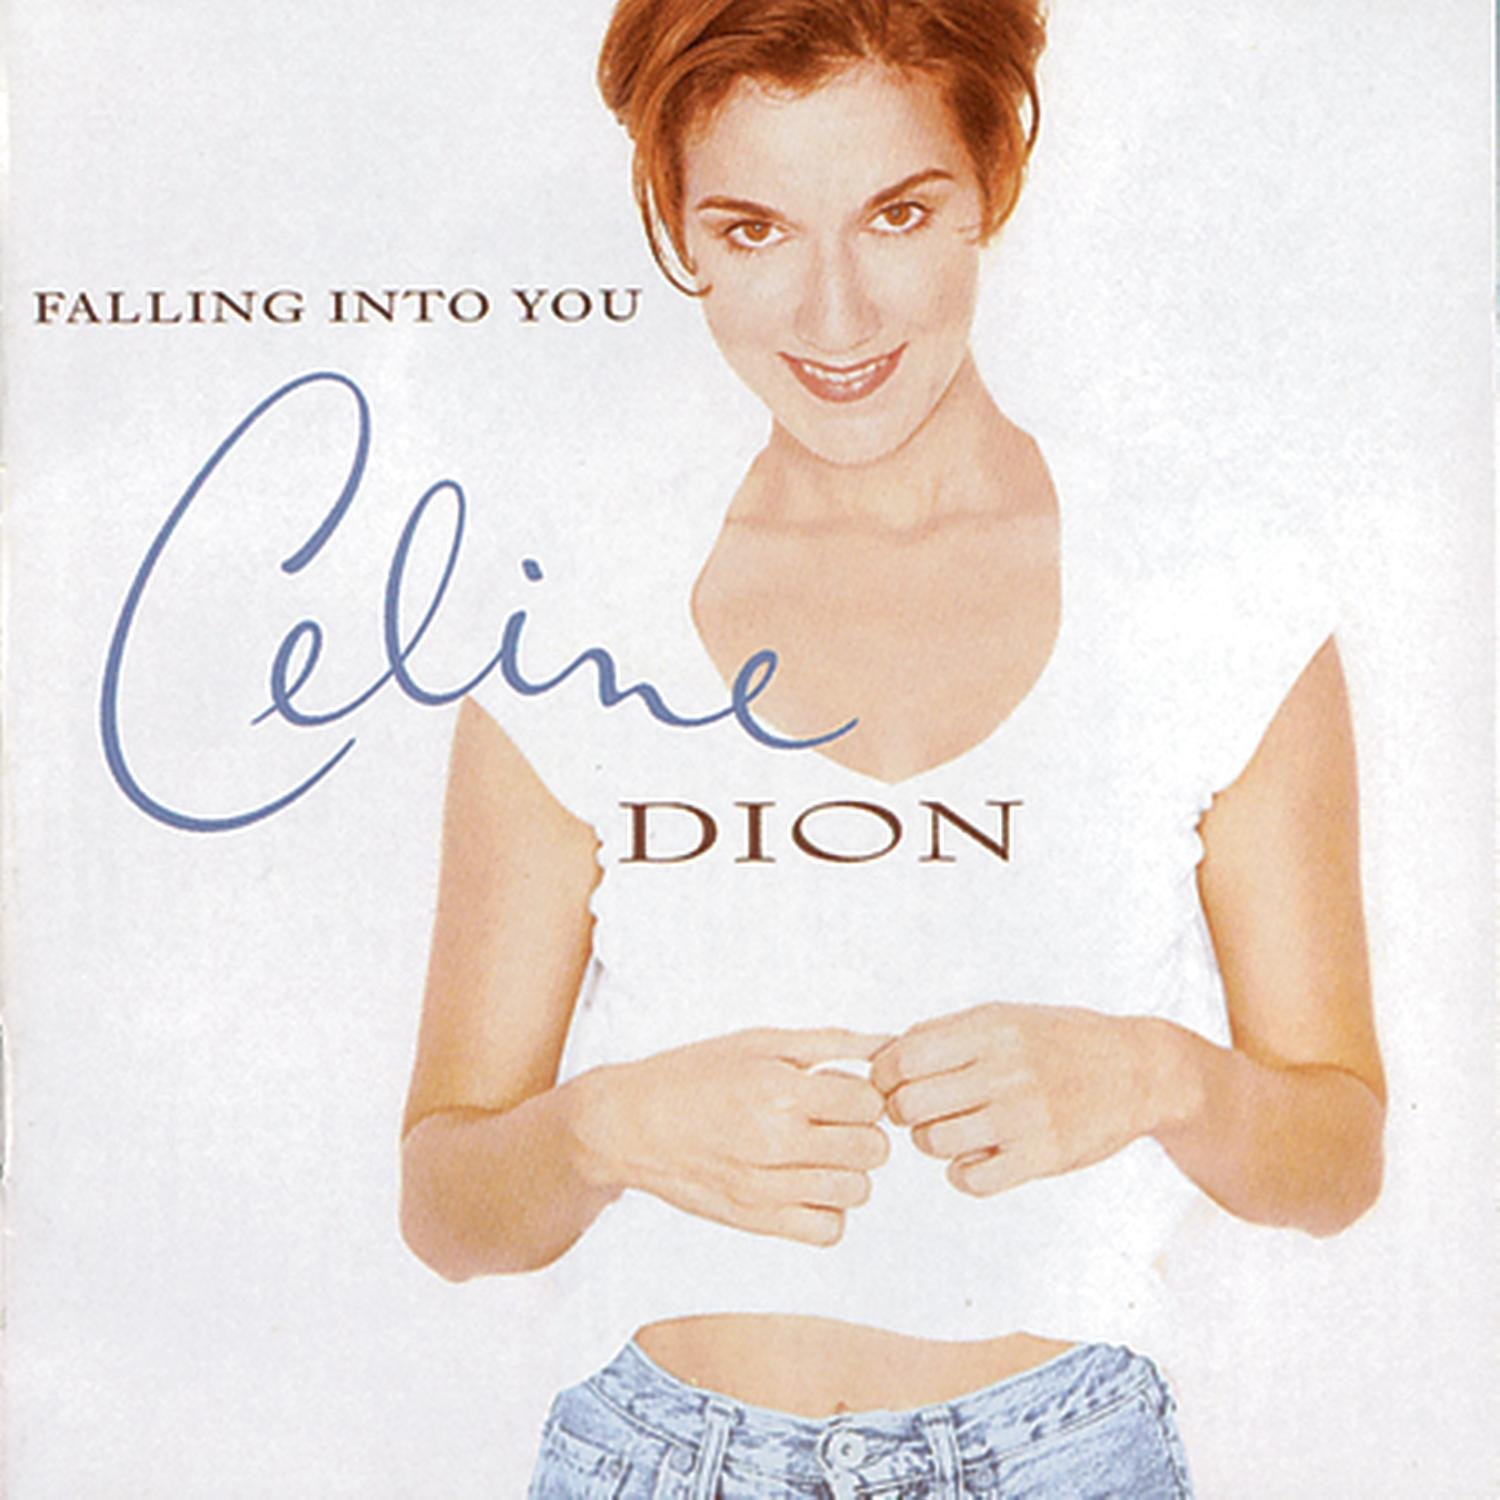 Celine Dion Falling Into You Album Cover